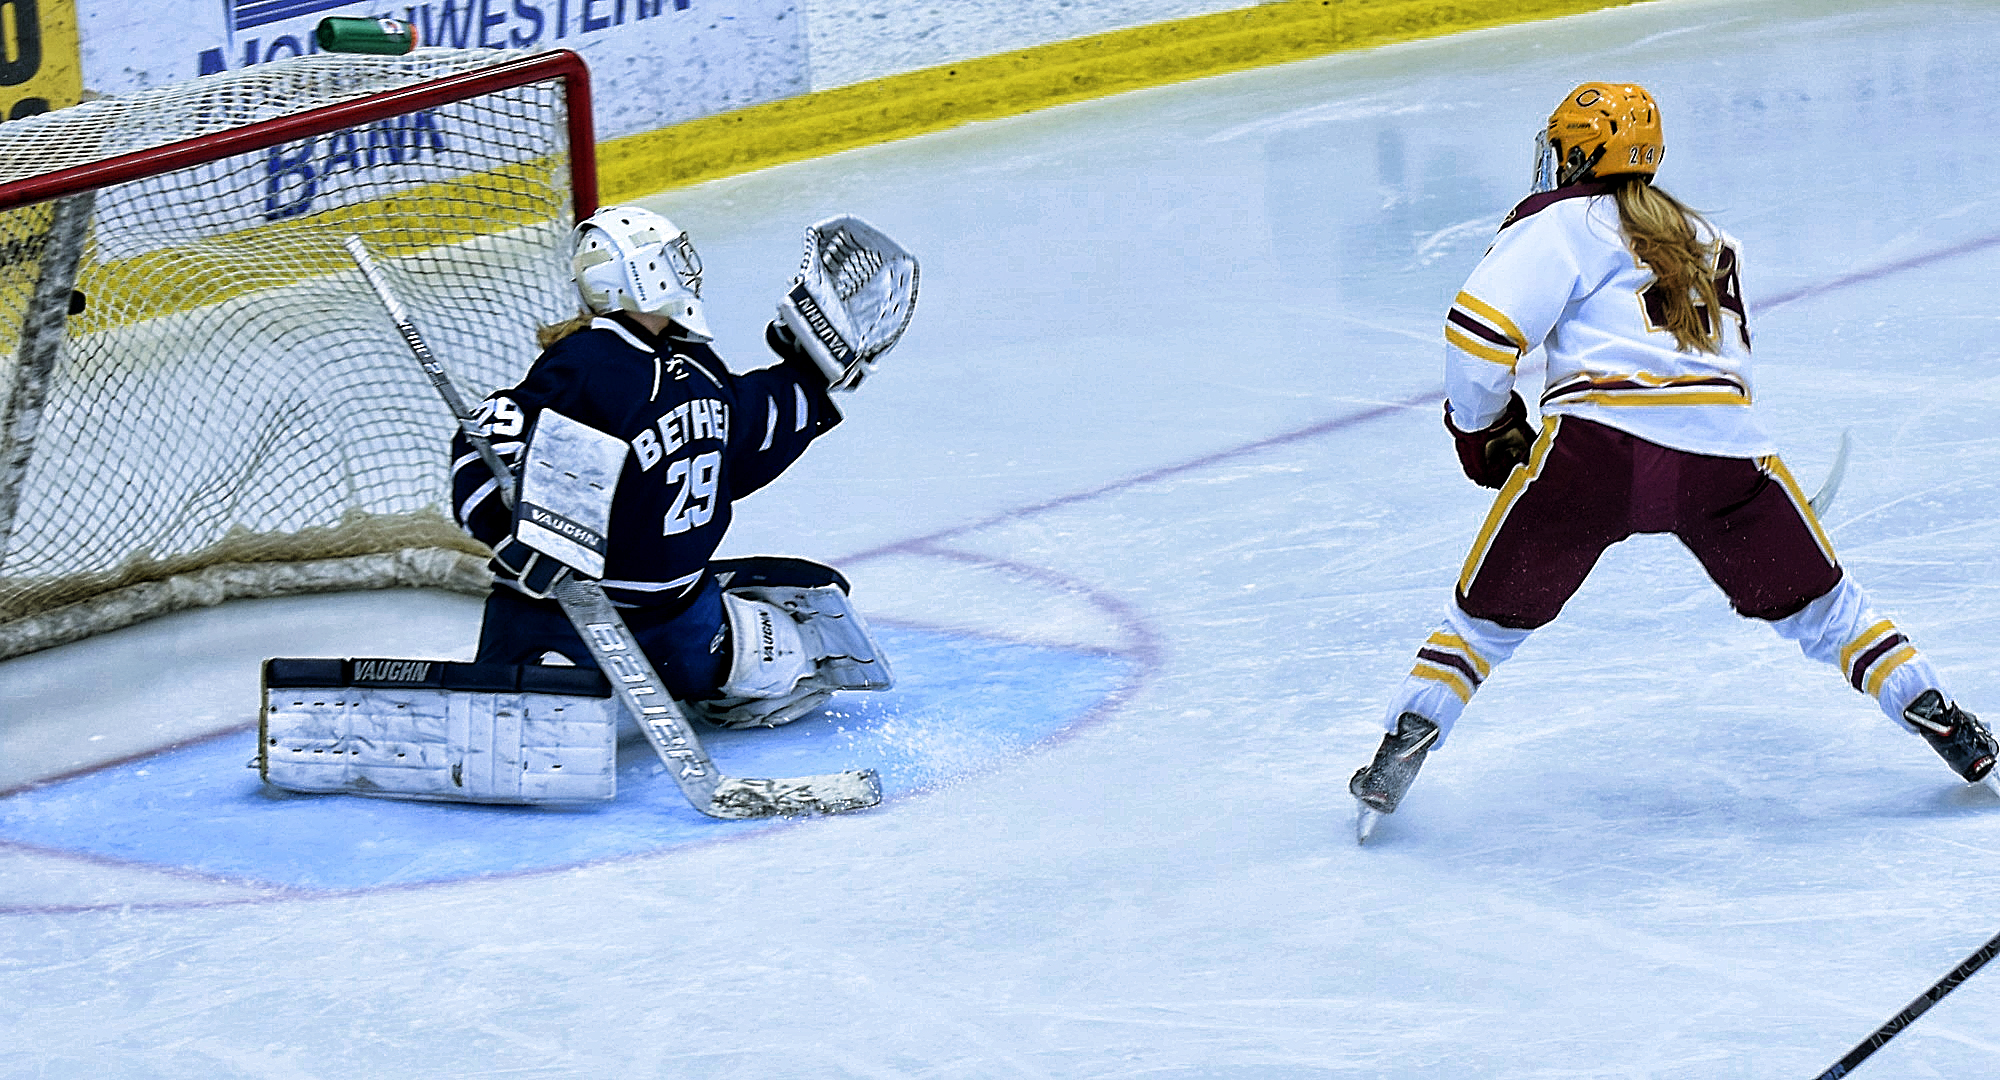 Sophomore Kaitlyn Page buries the puck in the Bethel net on a breakaway in the third period of the Cobbers' home opener.